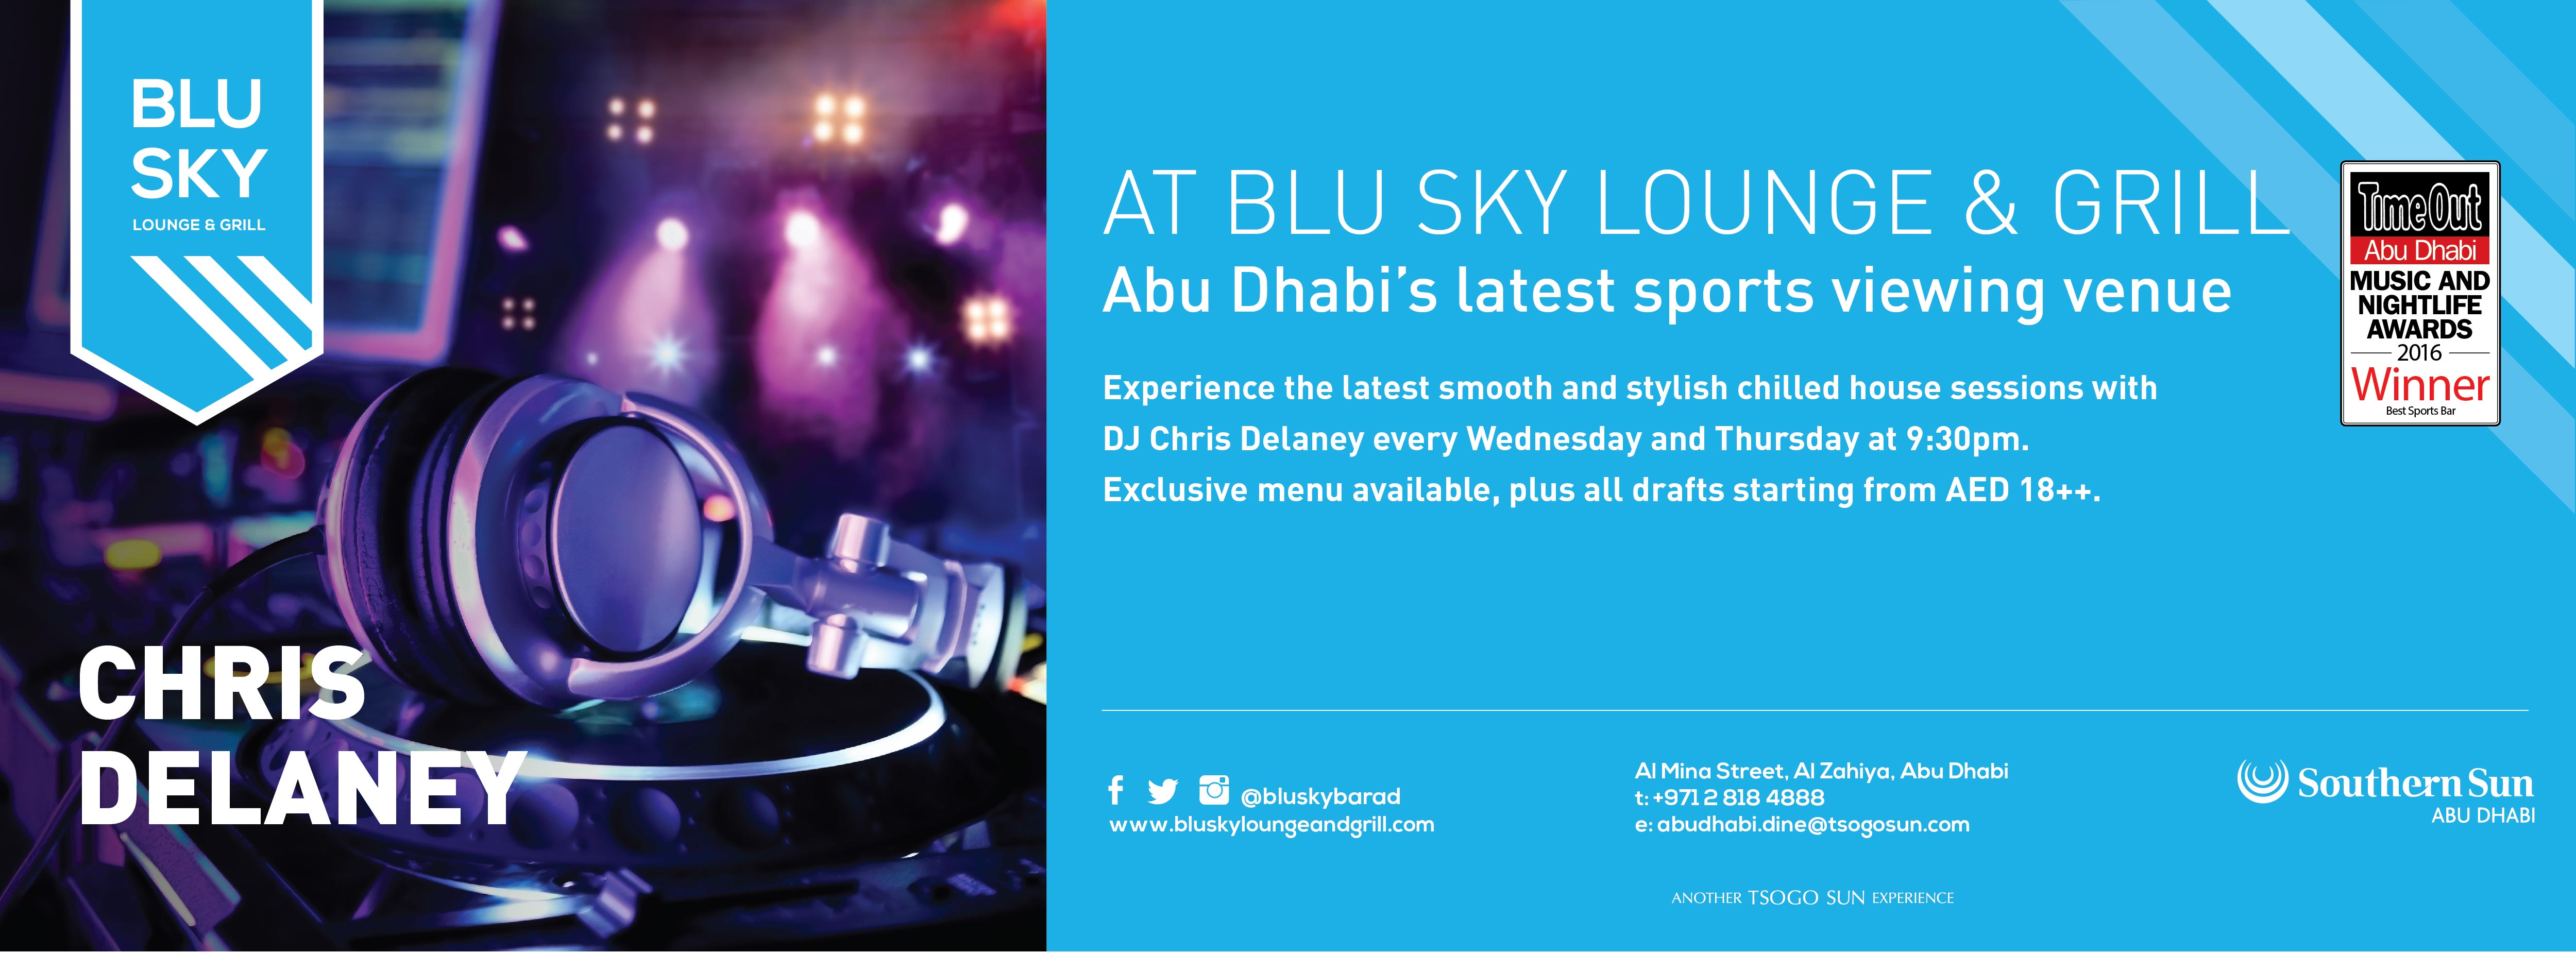 Chris Delaney @ Blu Sky